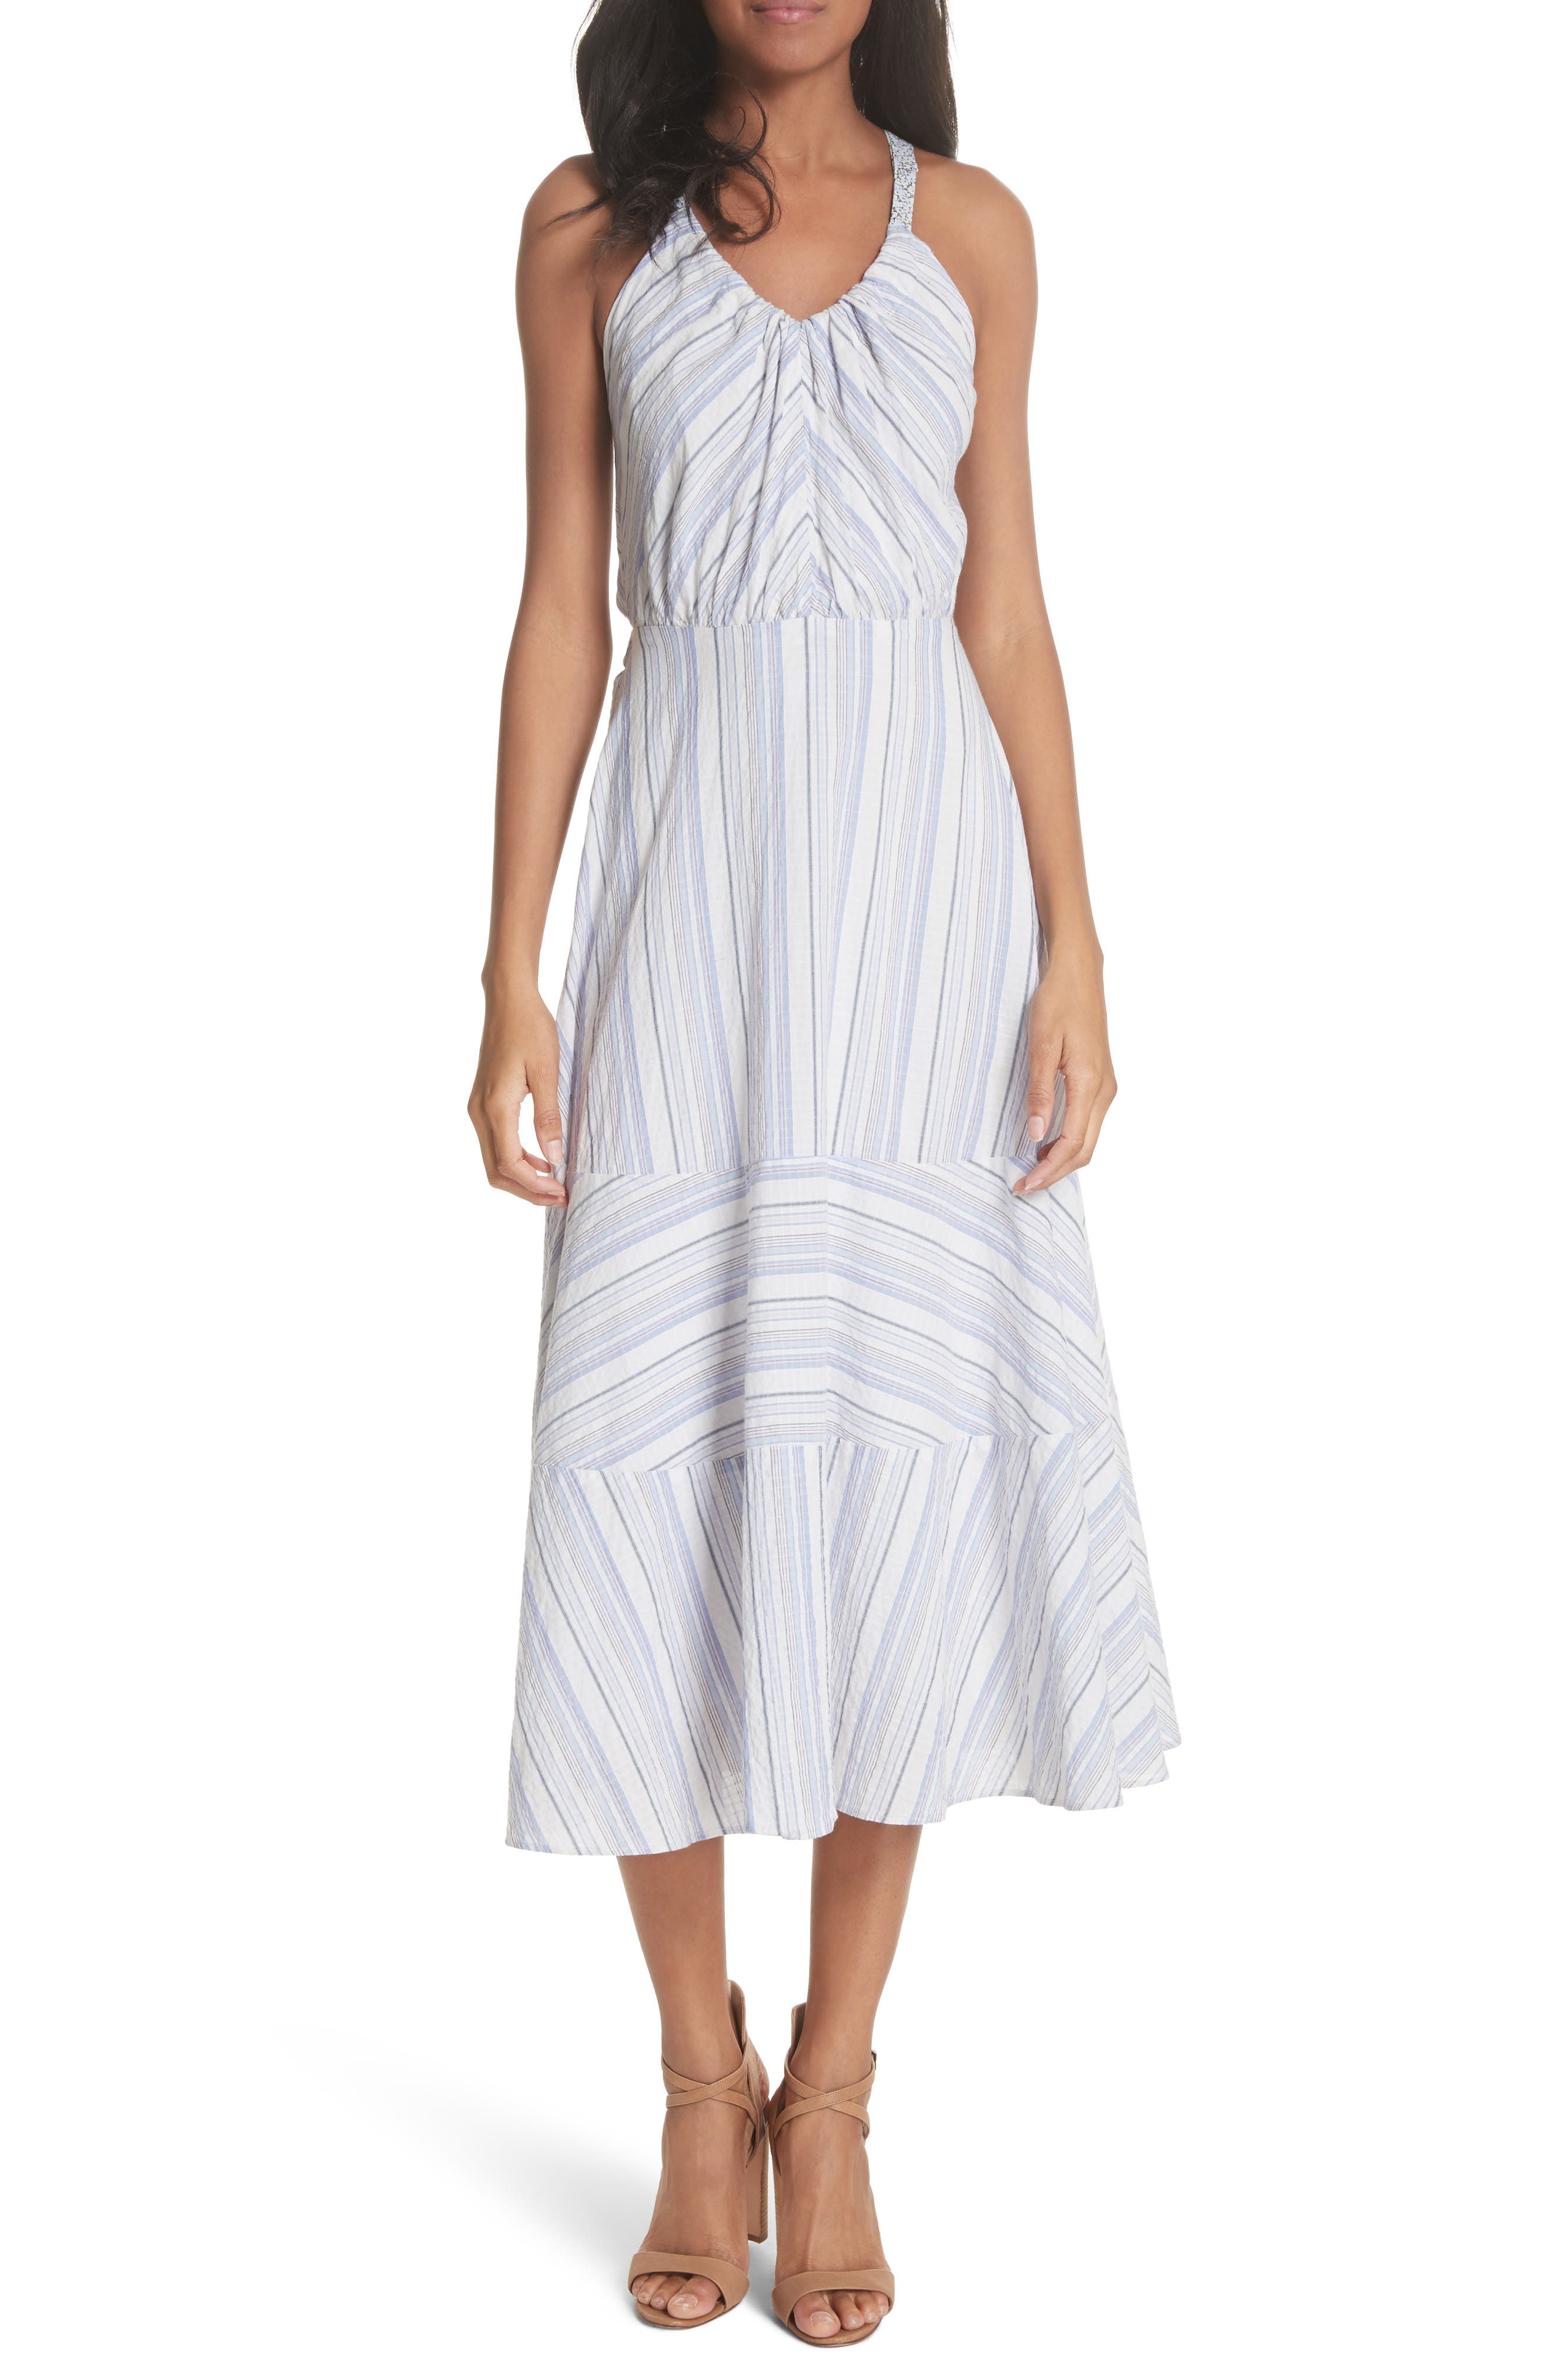 La Vie Rebecca Taylor Leila Stripe Midi Dress